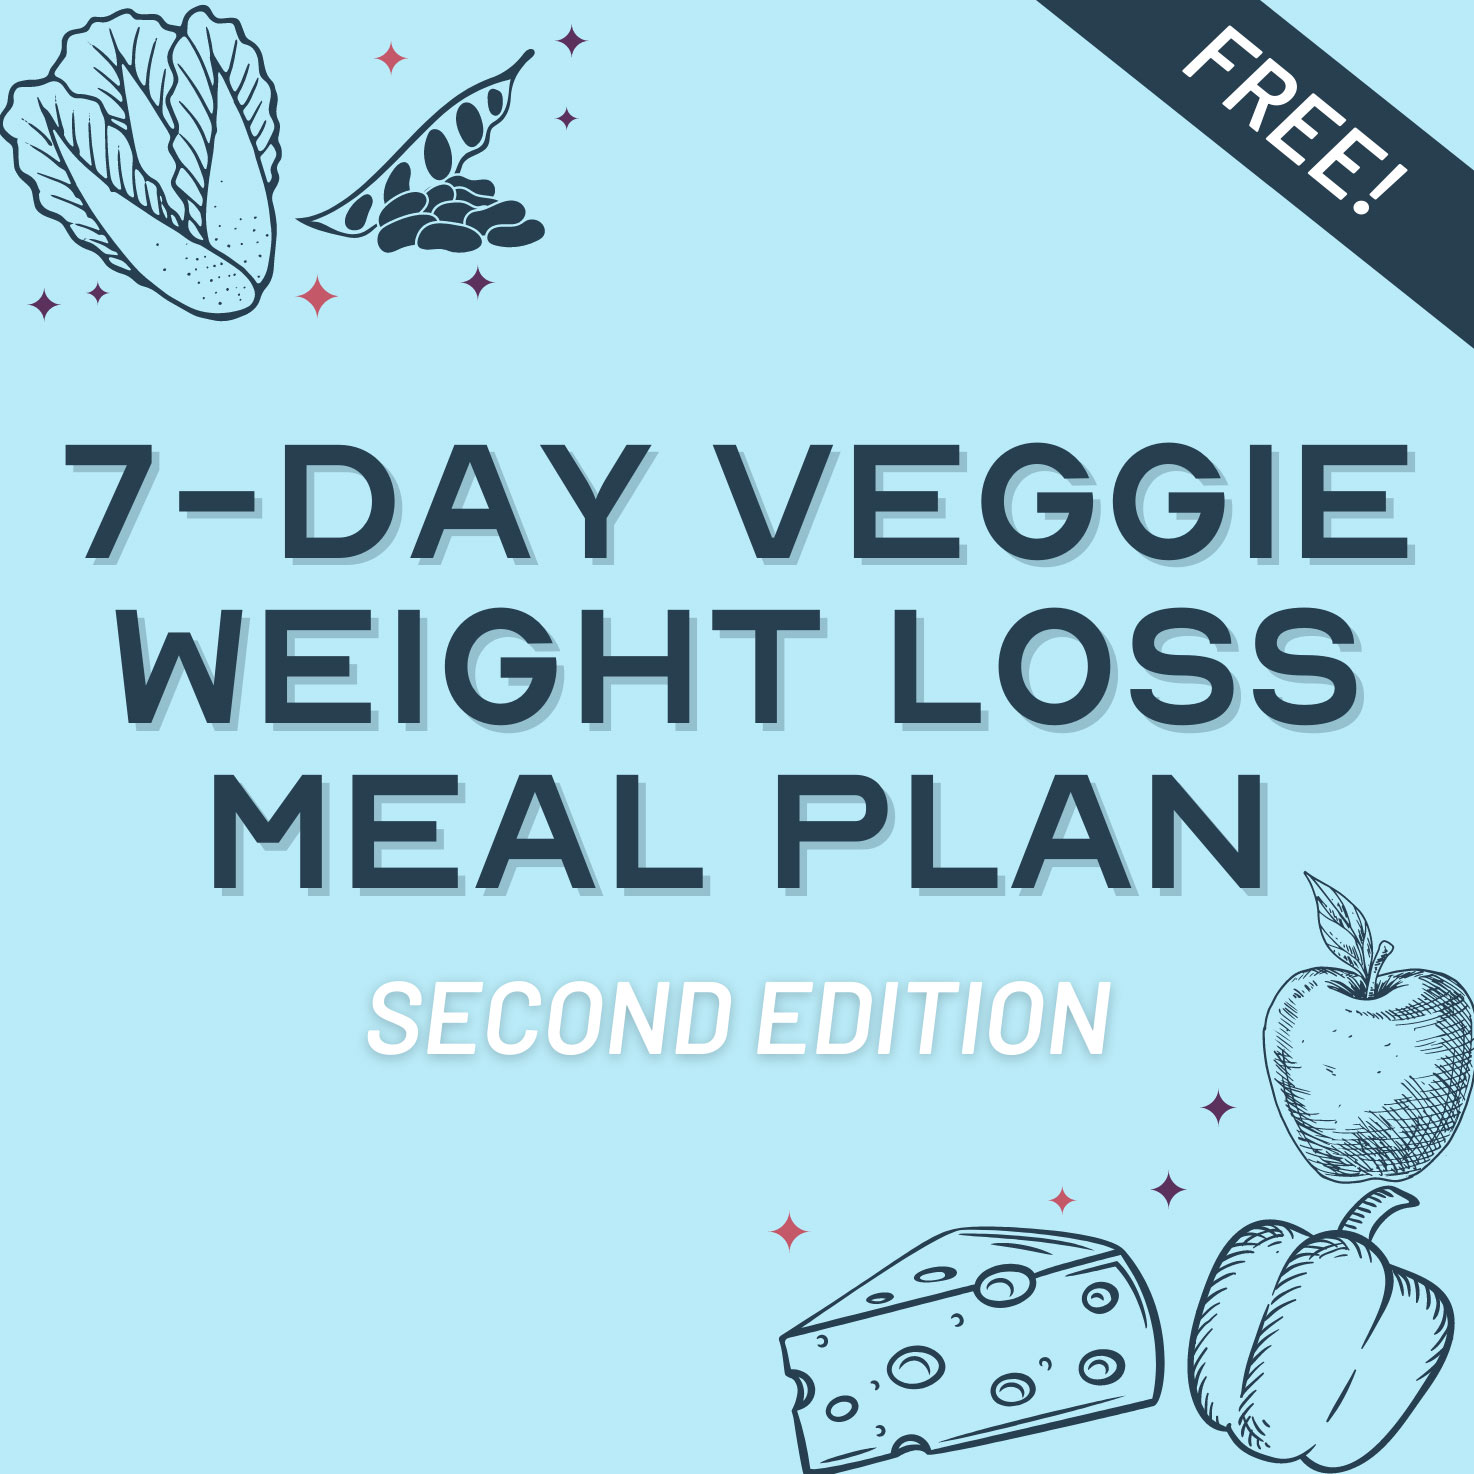 Veg diet plan for weight lose